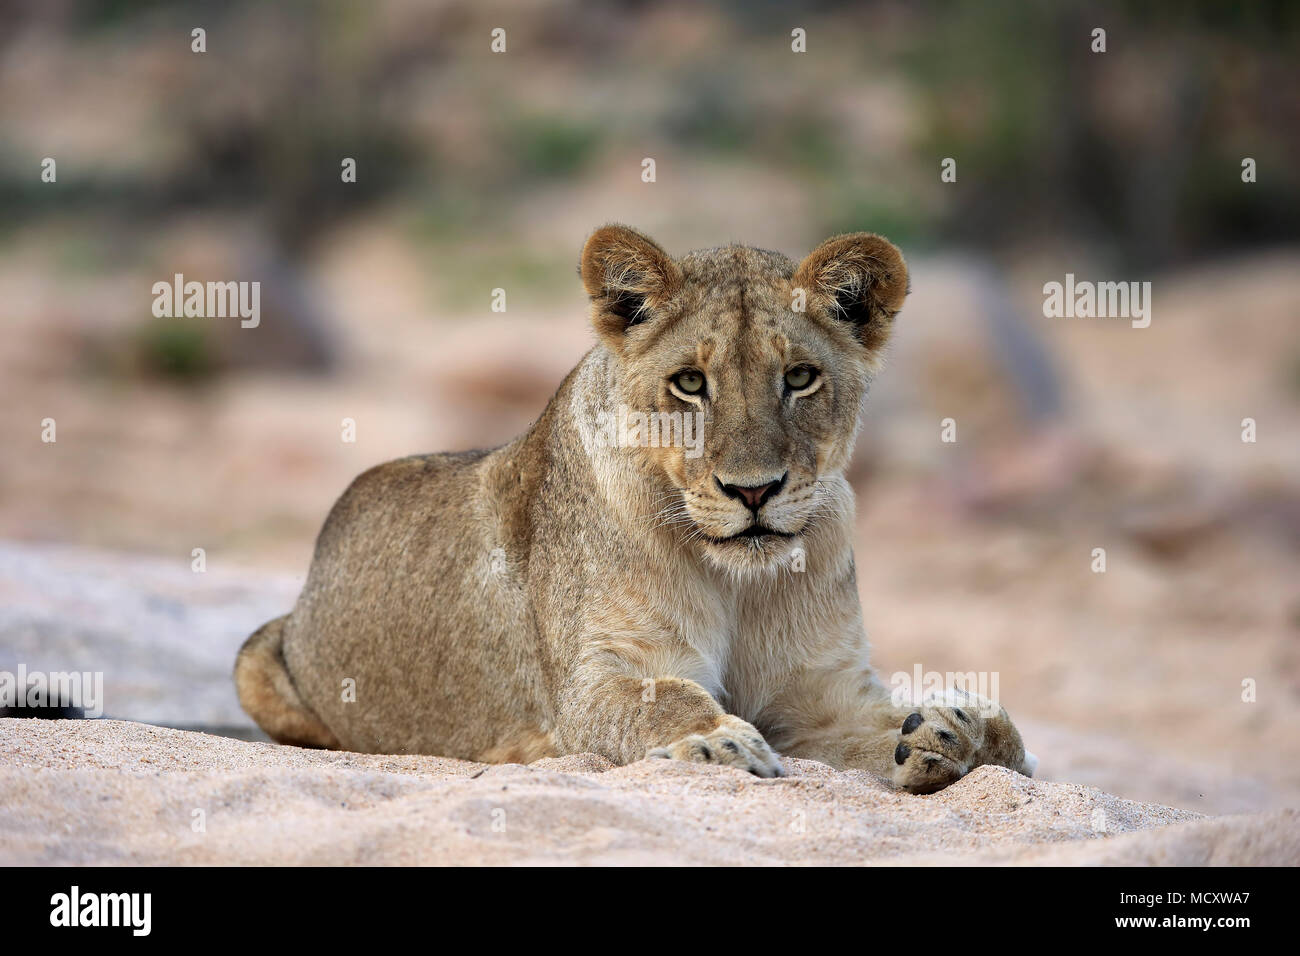 Lion (Panthera leo), adult female, attentive, observing, sitting in dry riverbed, Sabi Sand Game Reserve, Kruger National Park - Stock Image